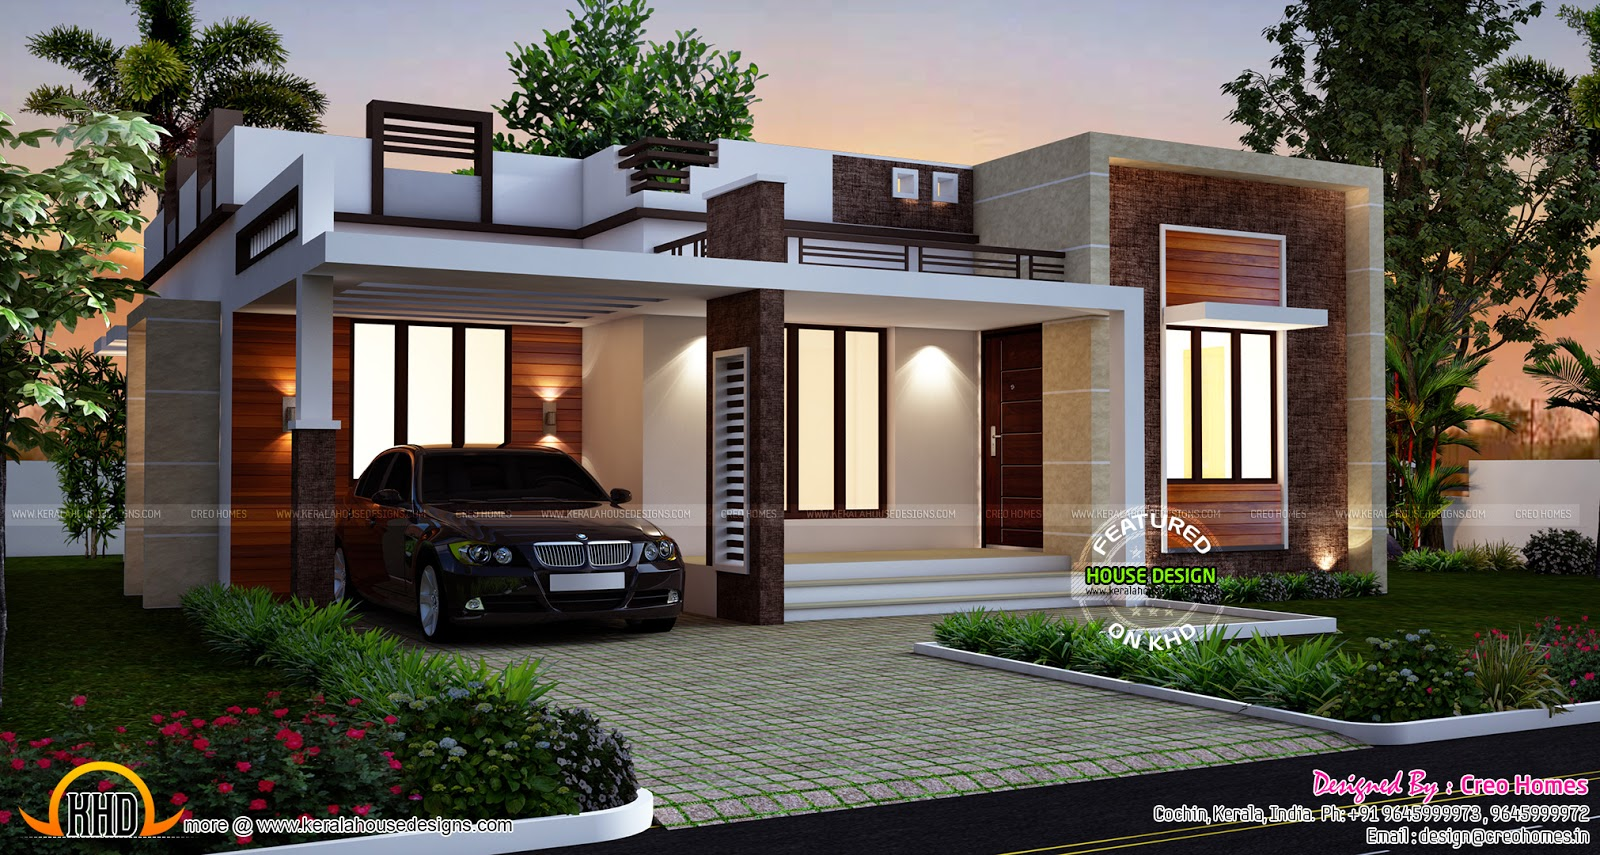 3 beautiful small house plans kerala home design and floor plans Home design and cost